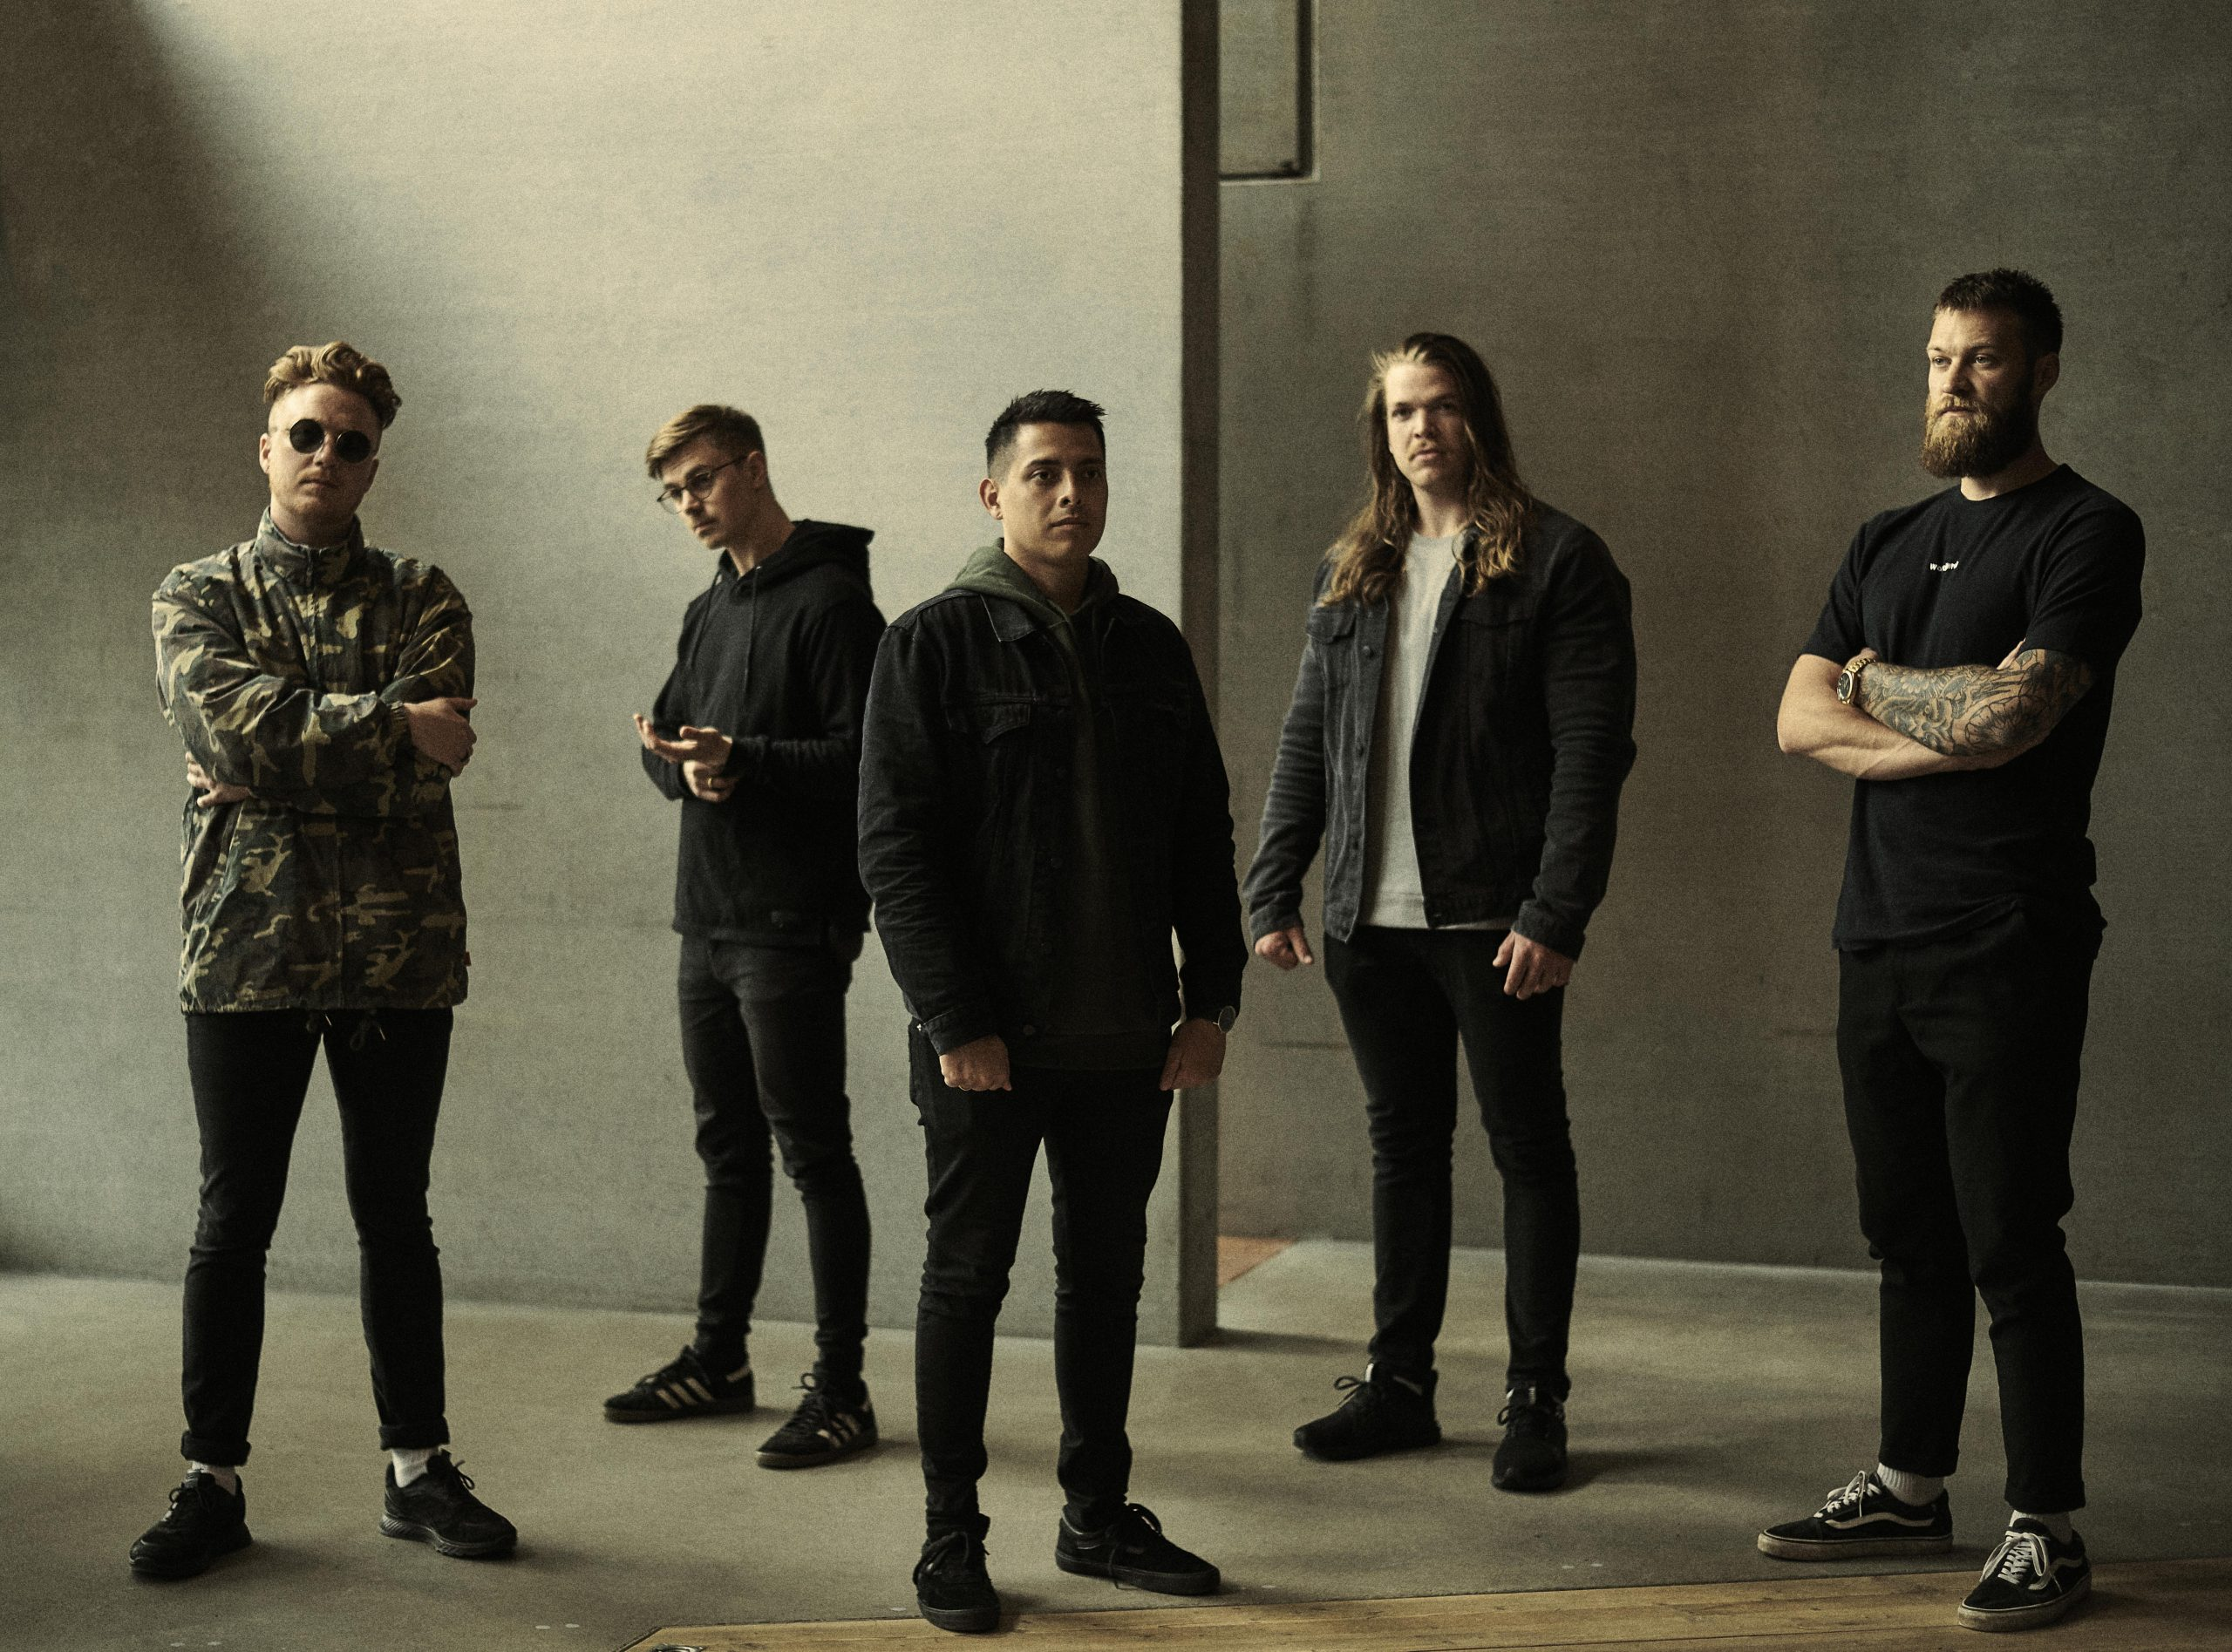 """Unseen Faith Depict a """"Downfall"""" in their Brand New Single"""